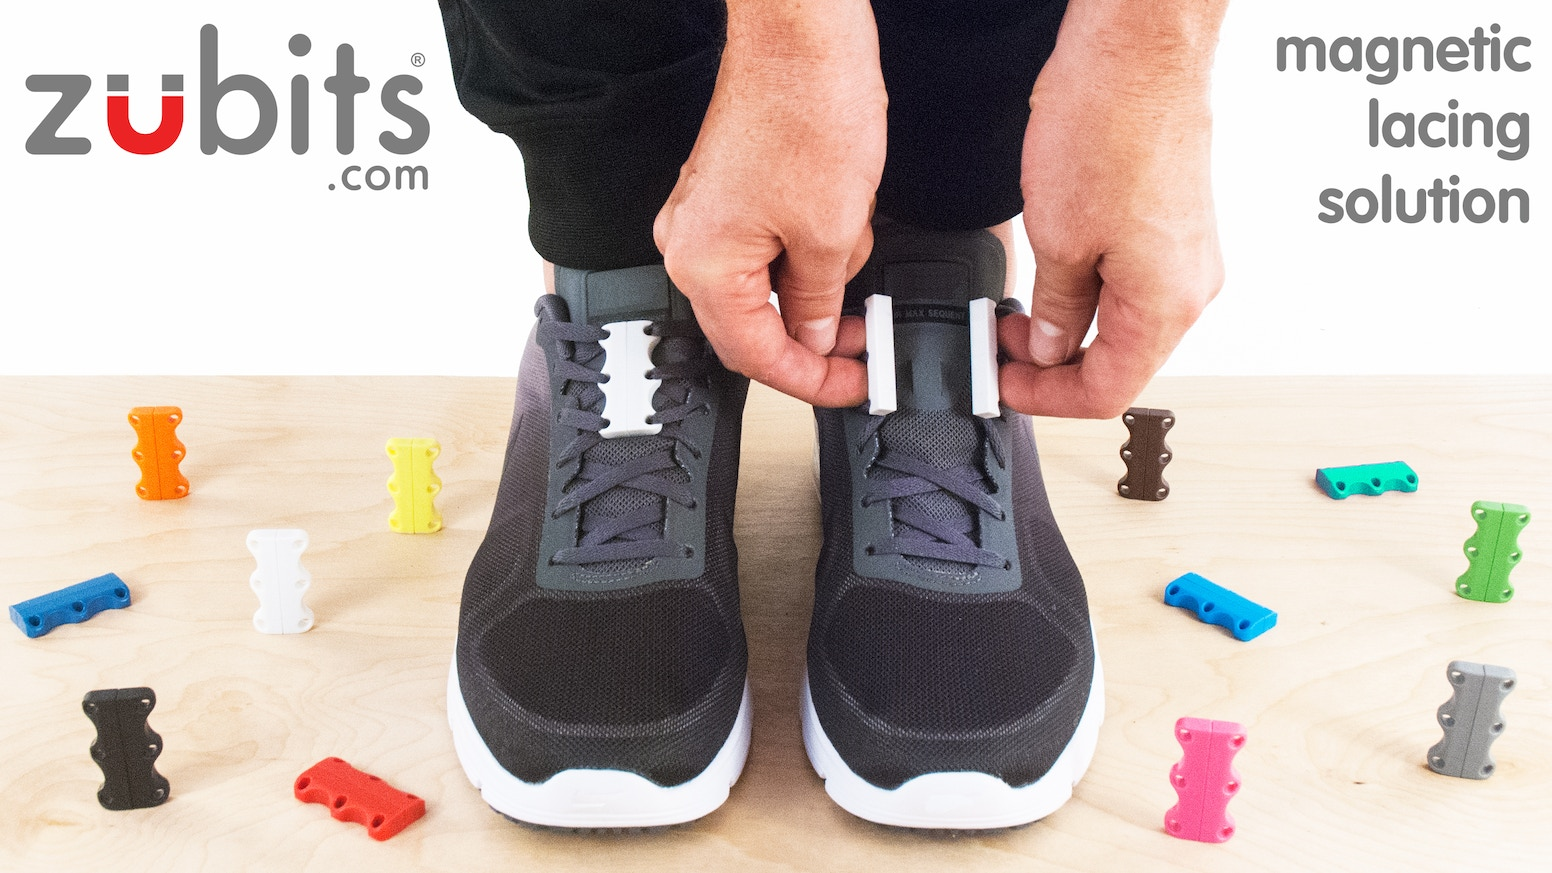 Never tie laces again zubits magnetic lacing solution 20 by ryan simplify your shoes with our high tech magnetic solution no more tying knots ccuart Choice Image